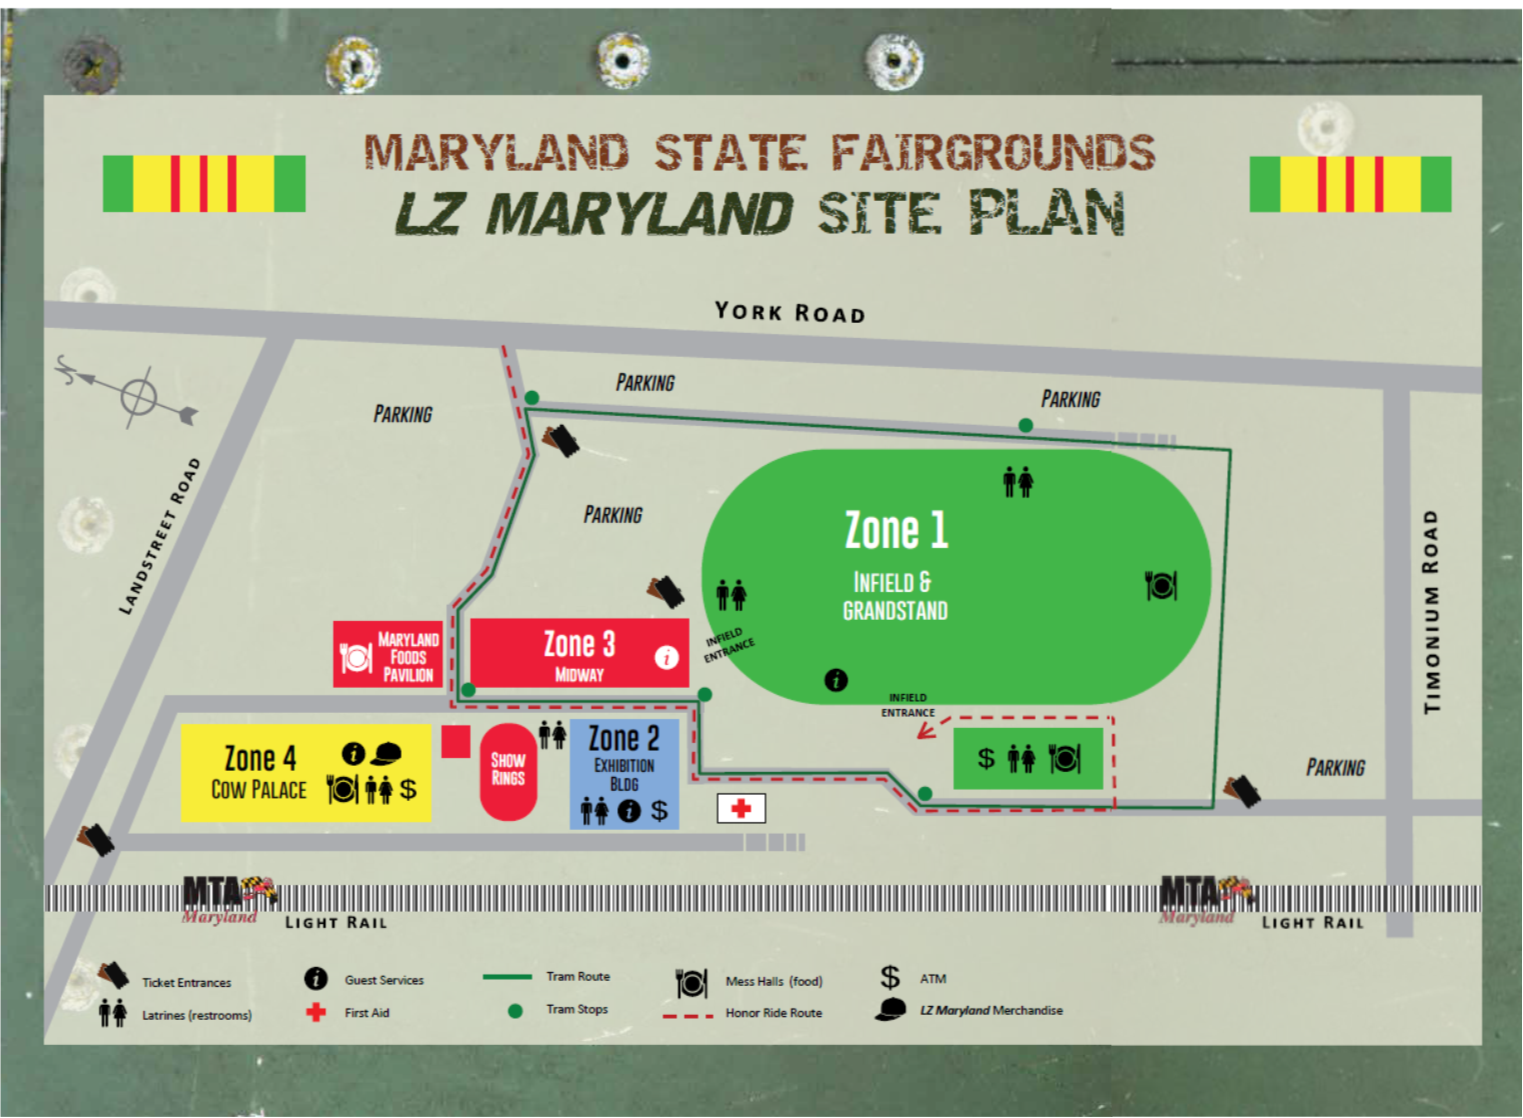 LZ Maryland Site Plan